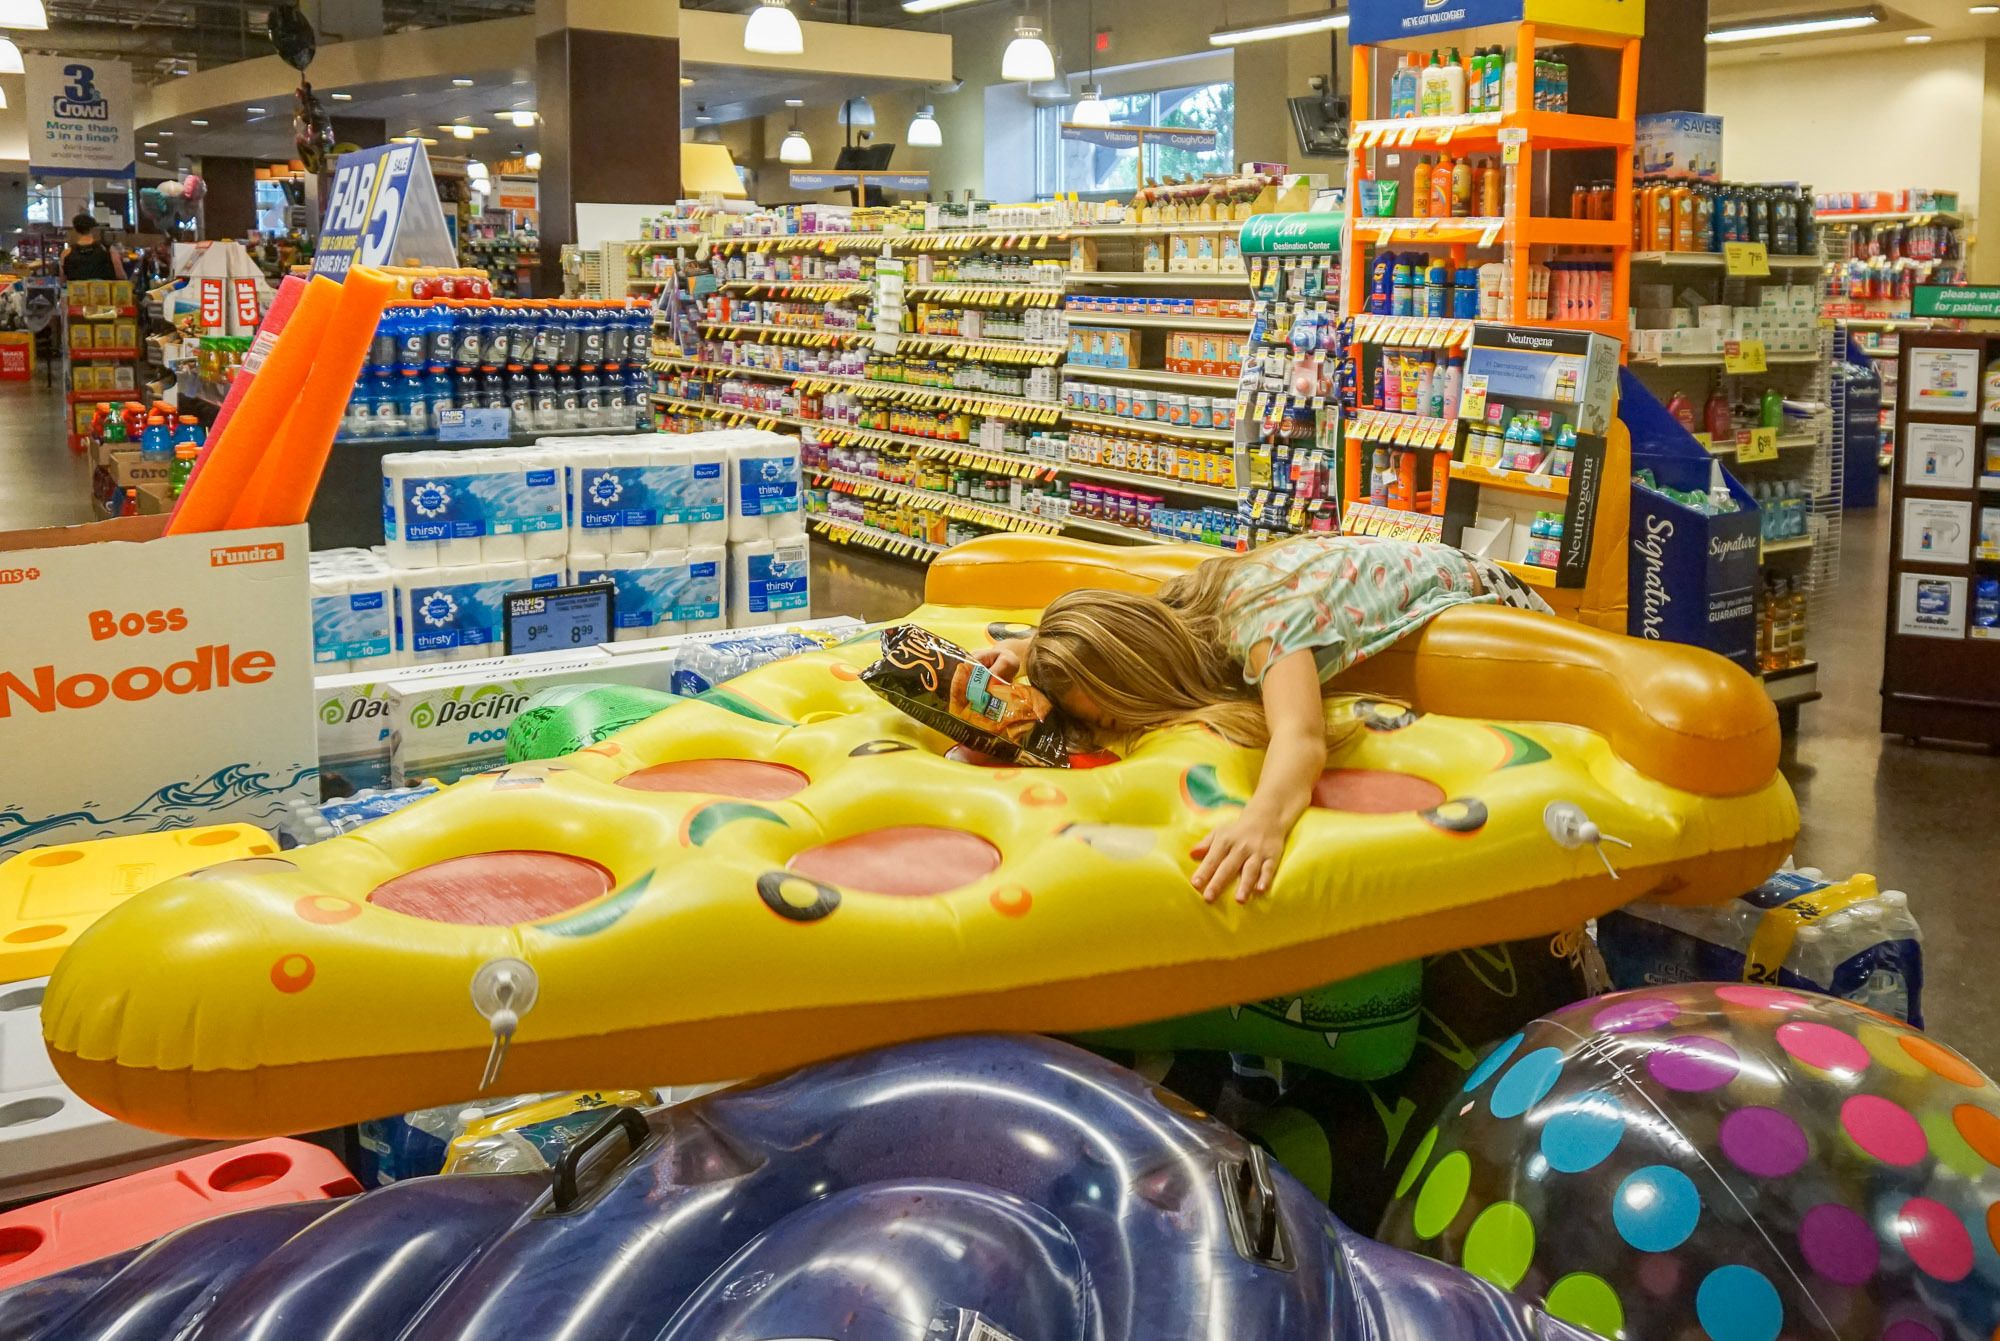 A pizza pool float at Albertsons San Diego.